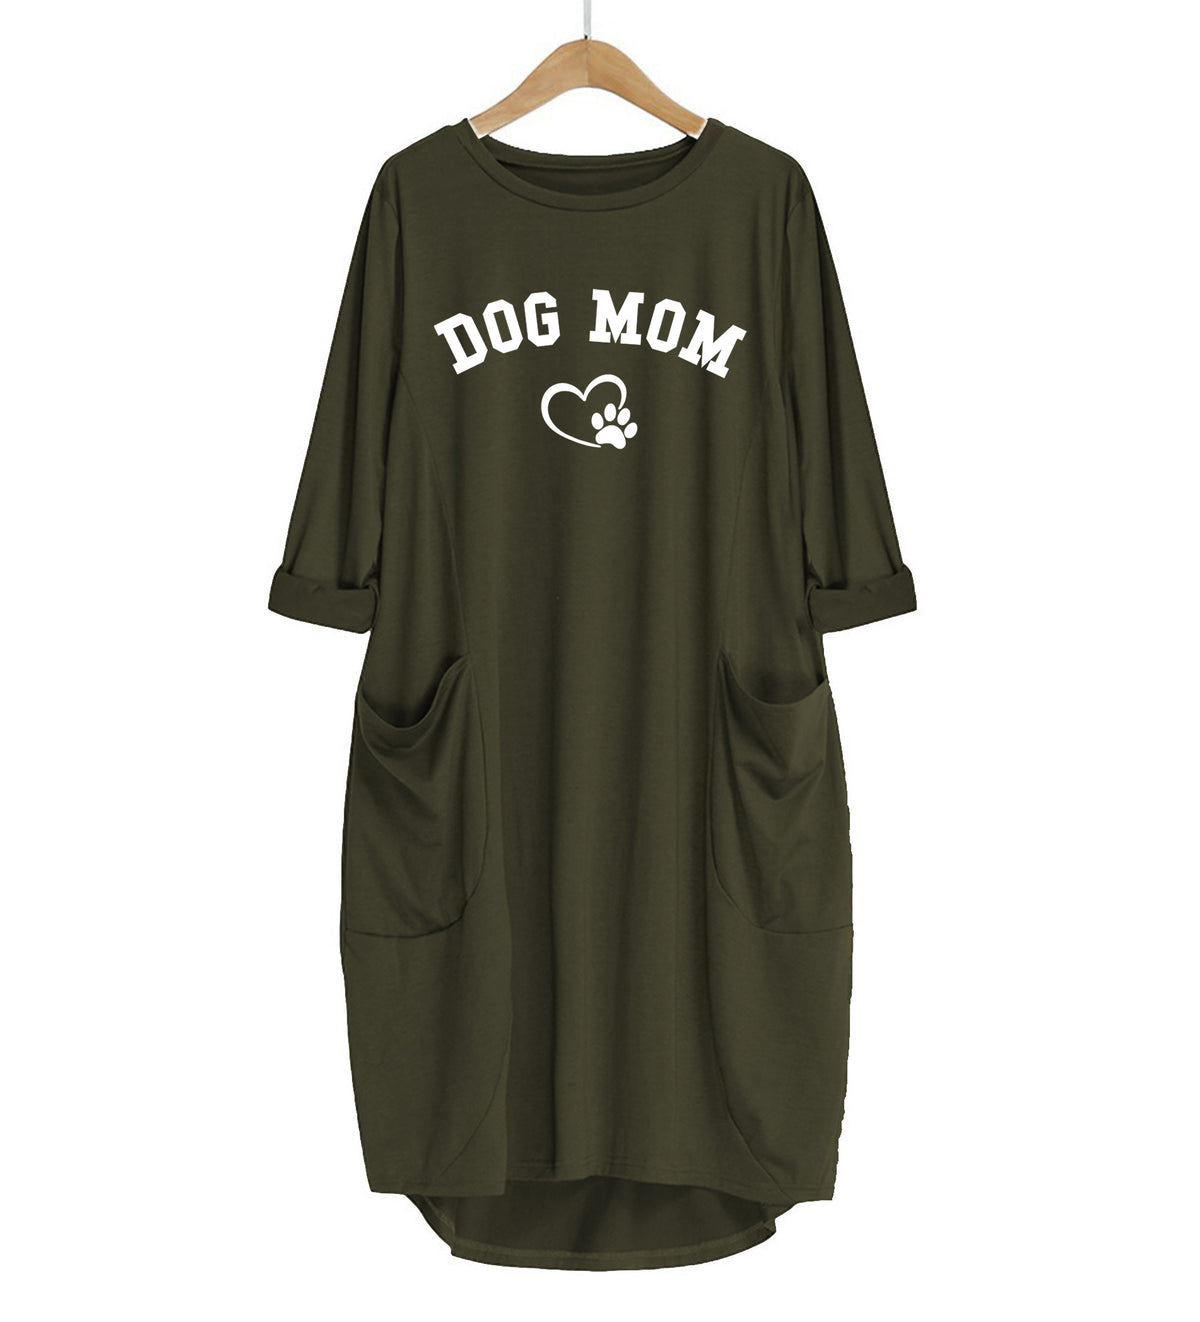 Dog Mom Day Dress